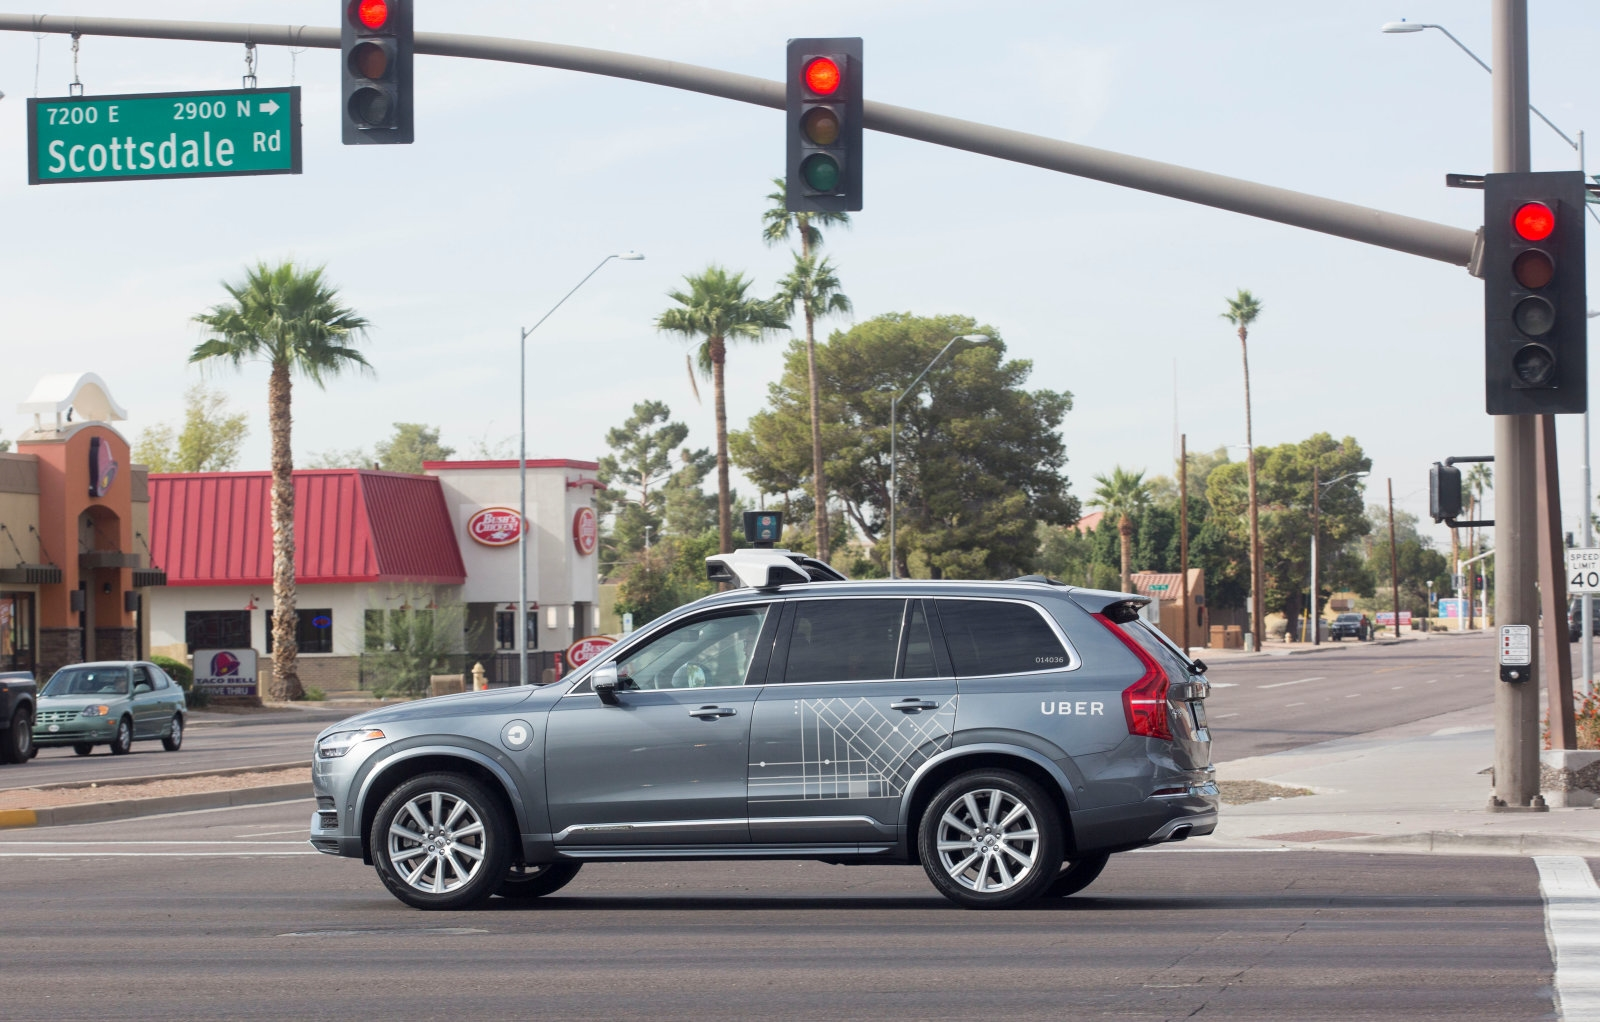 Uber settles with family of pedestrian hit by its self-driving SUV | DeviceDaily.com